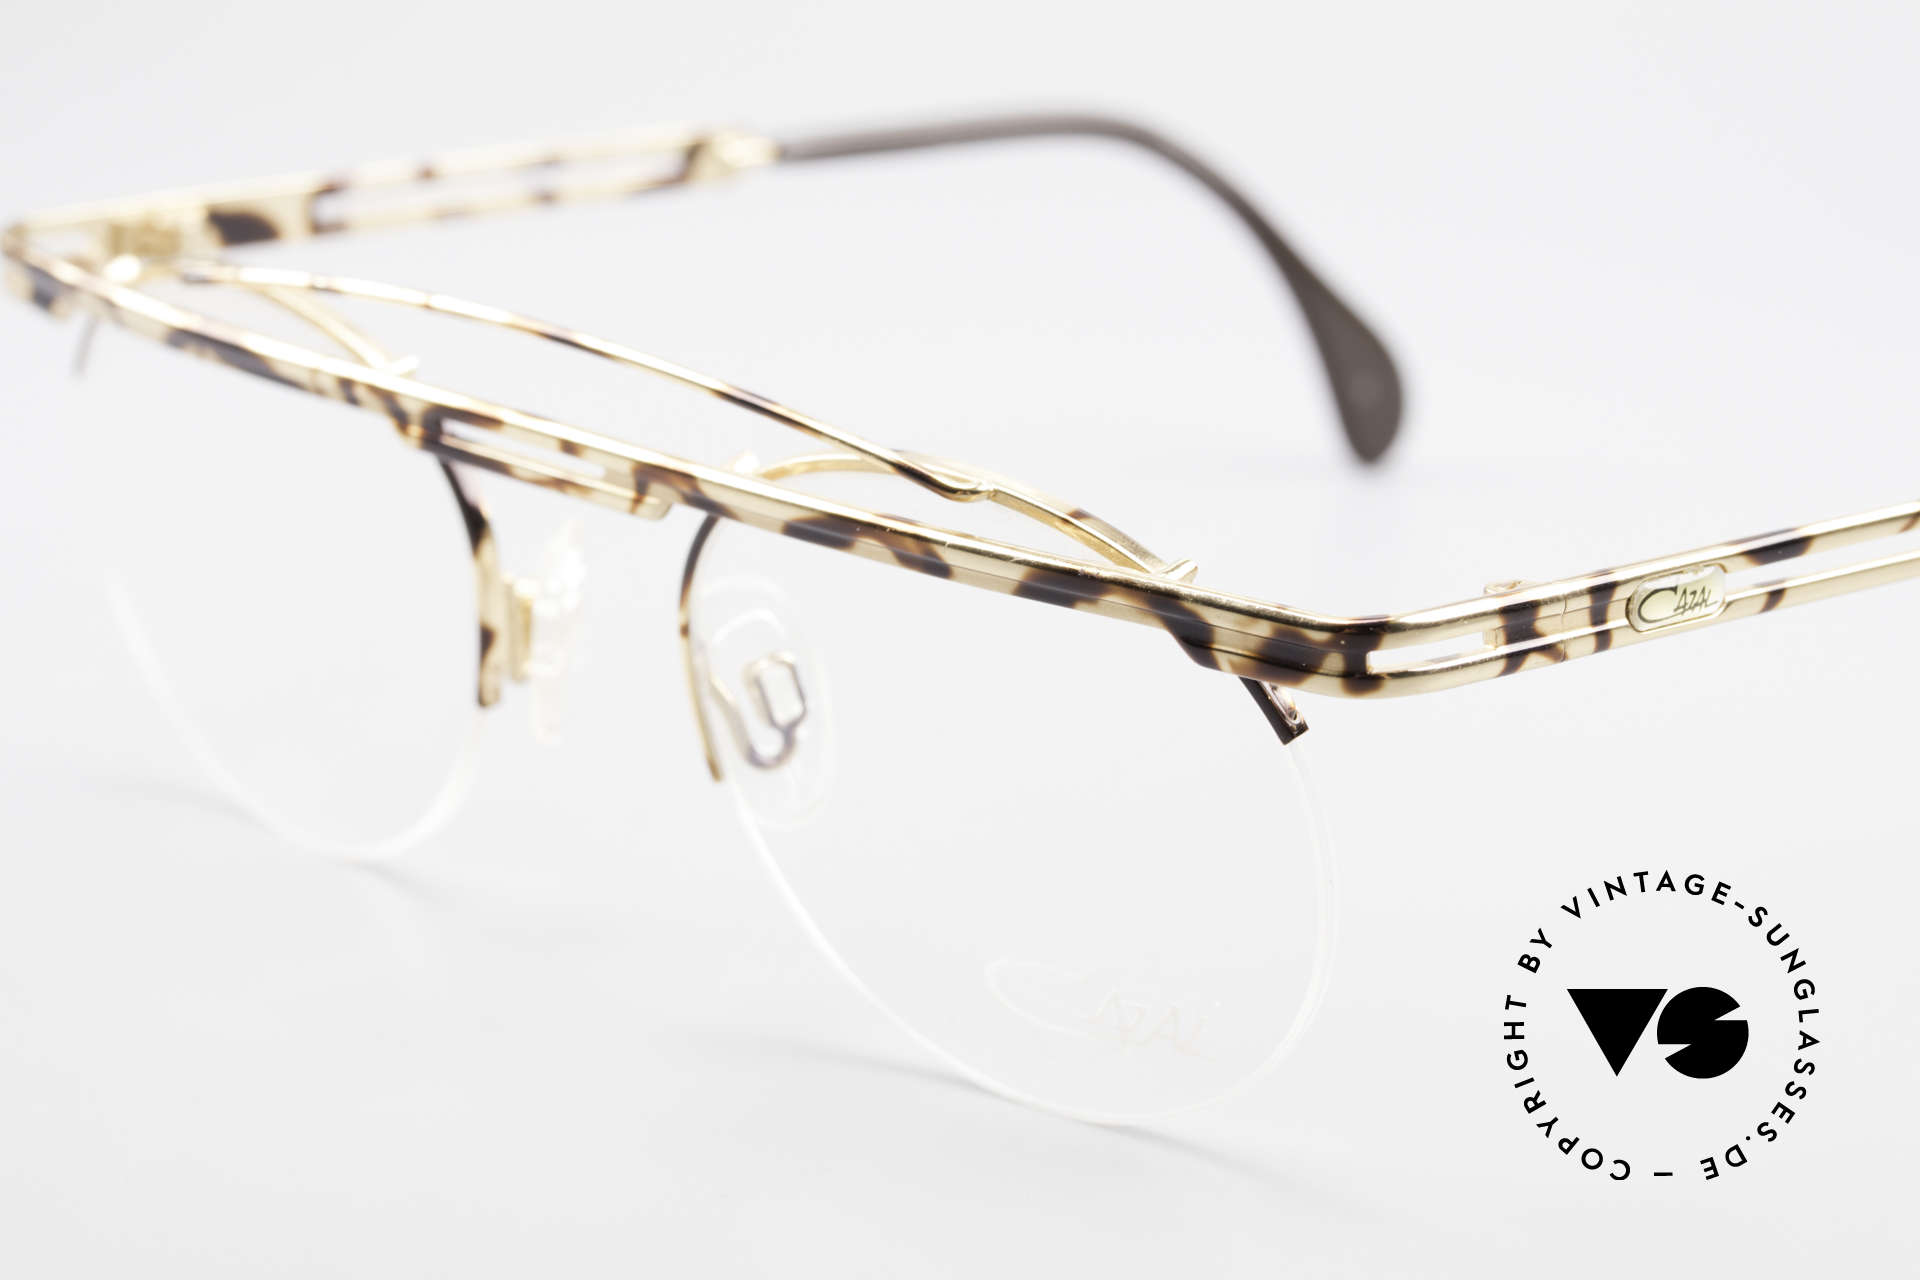 Cazal 748 Rare Vintage No Retro Glasses, color description in the old catalog: gold-brown mottled, Made for Men and Women